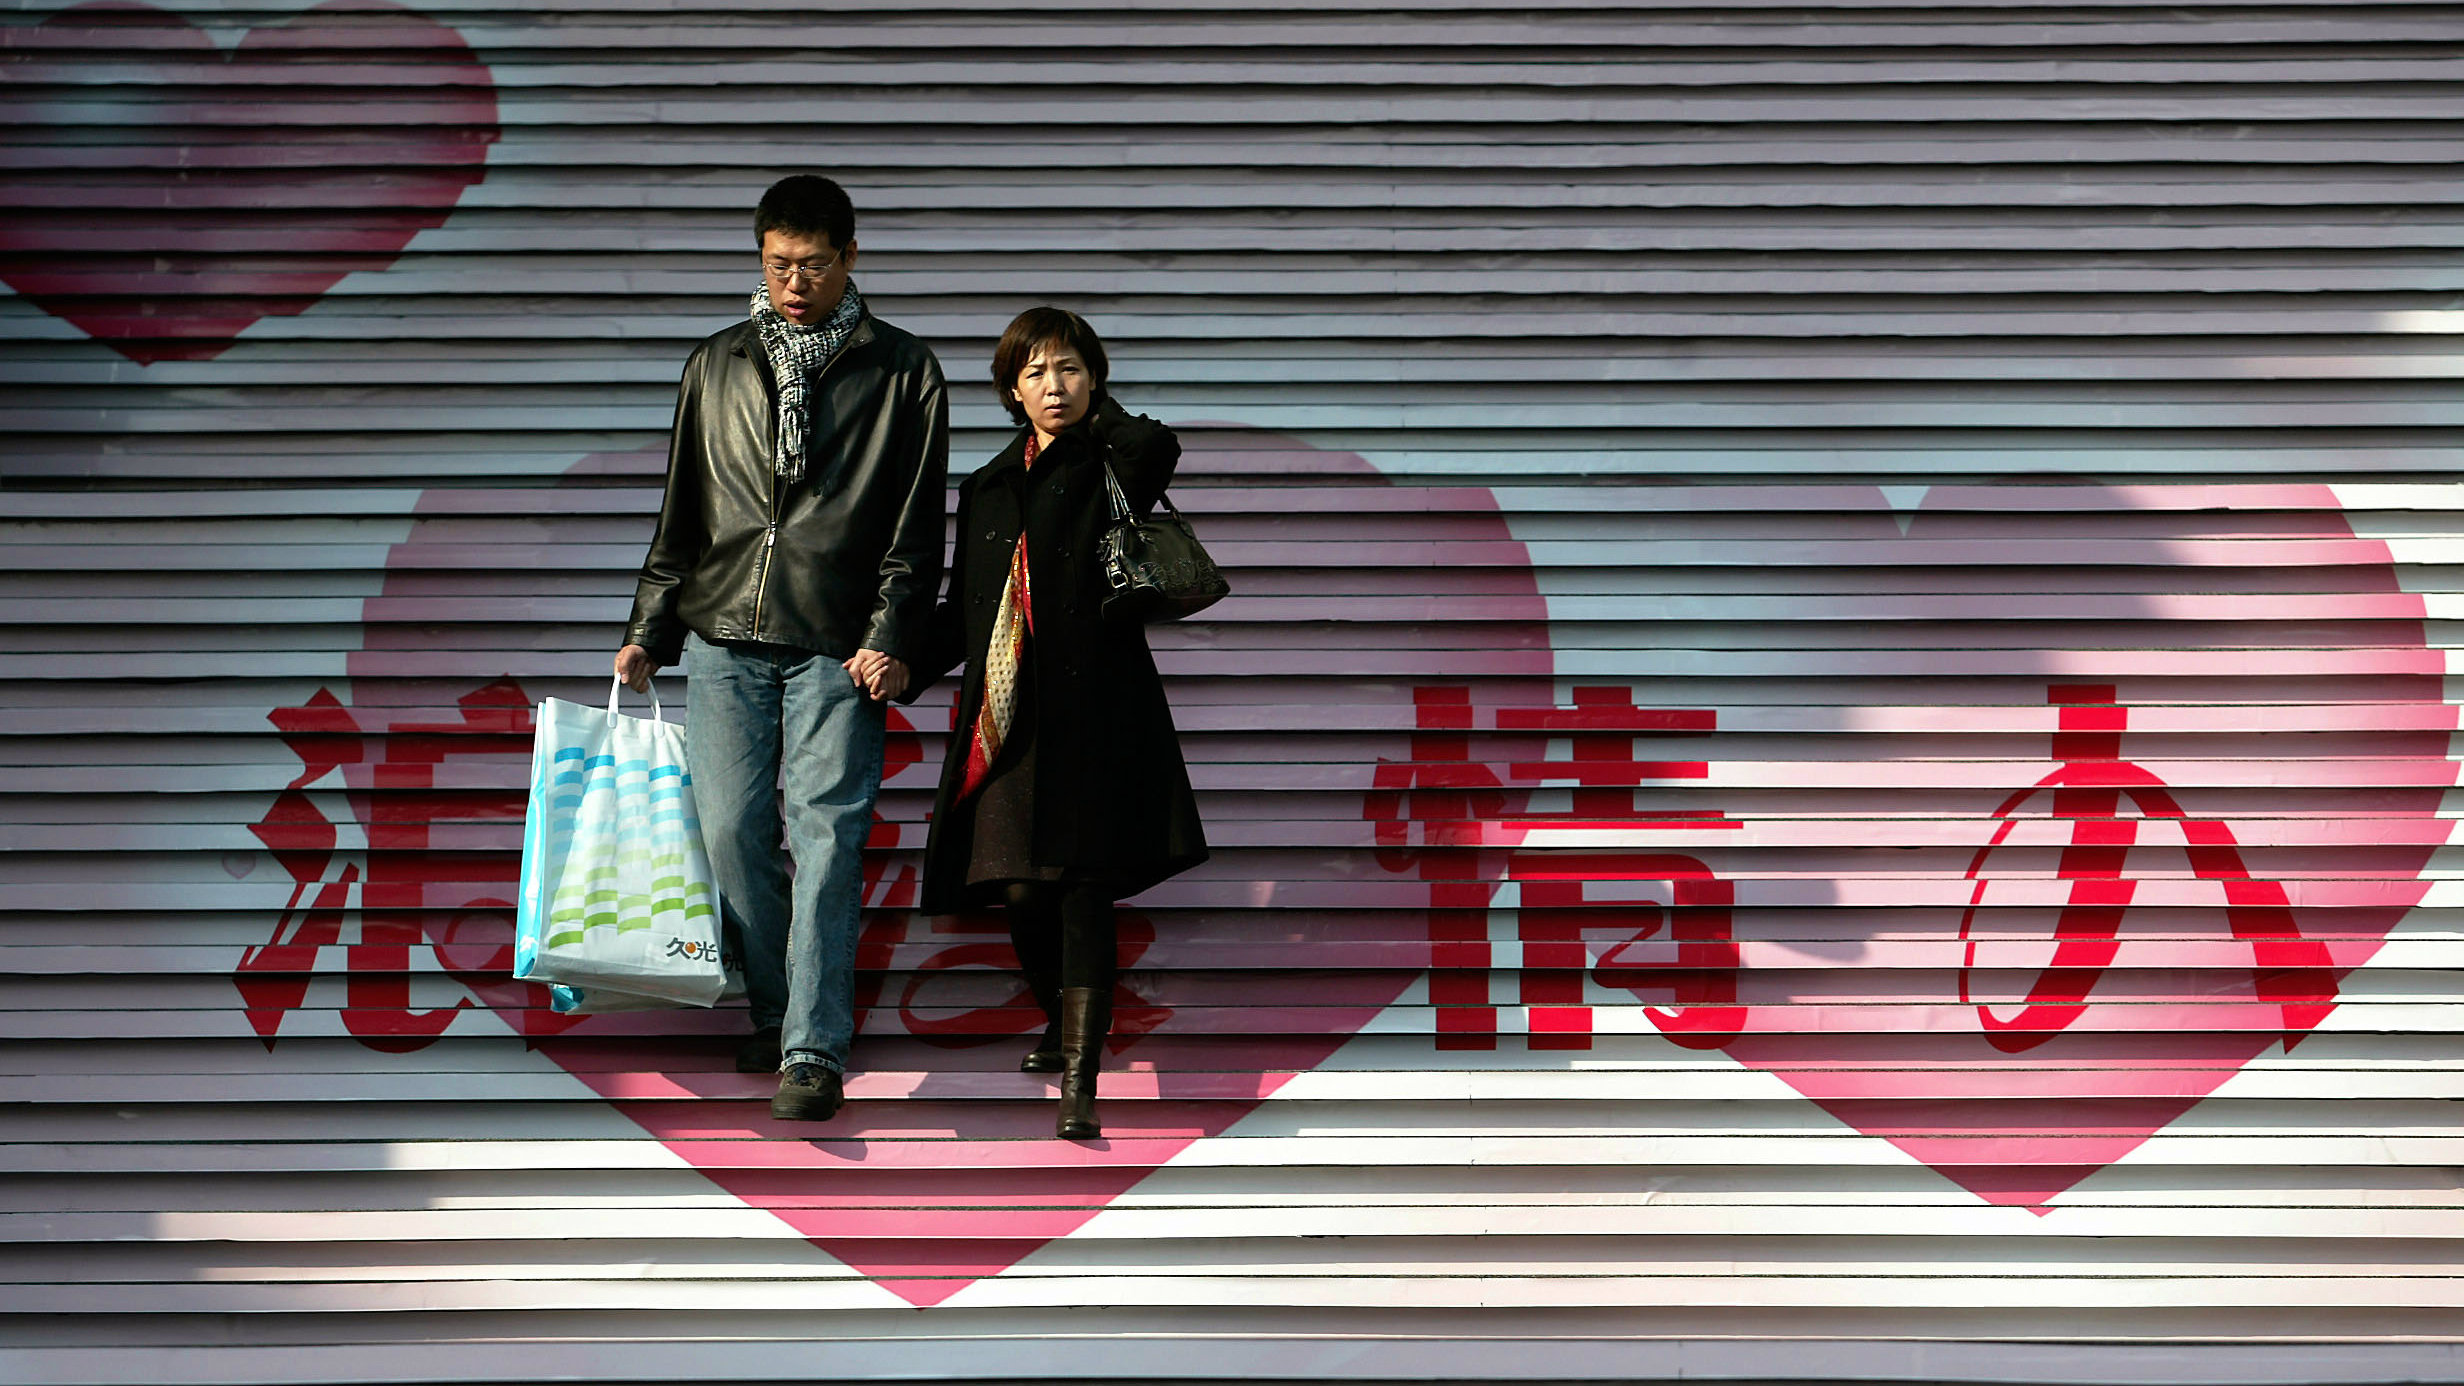 Couple walking in China